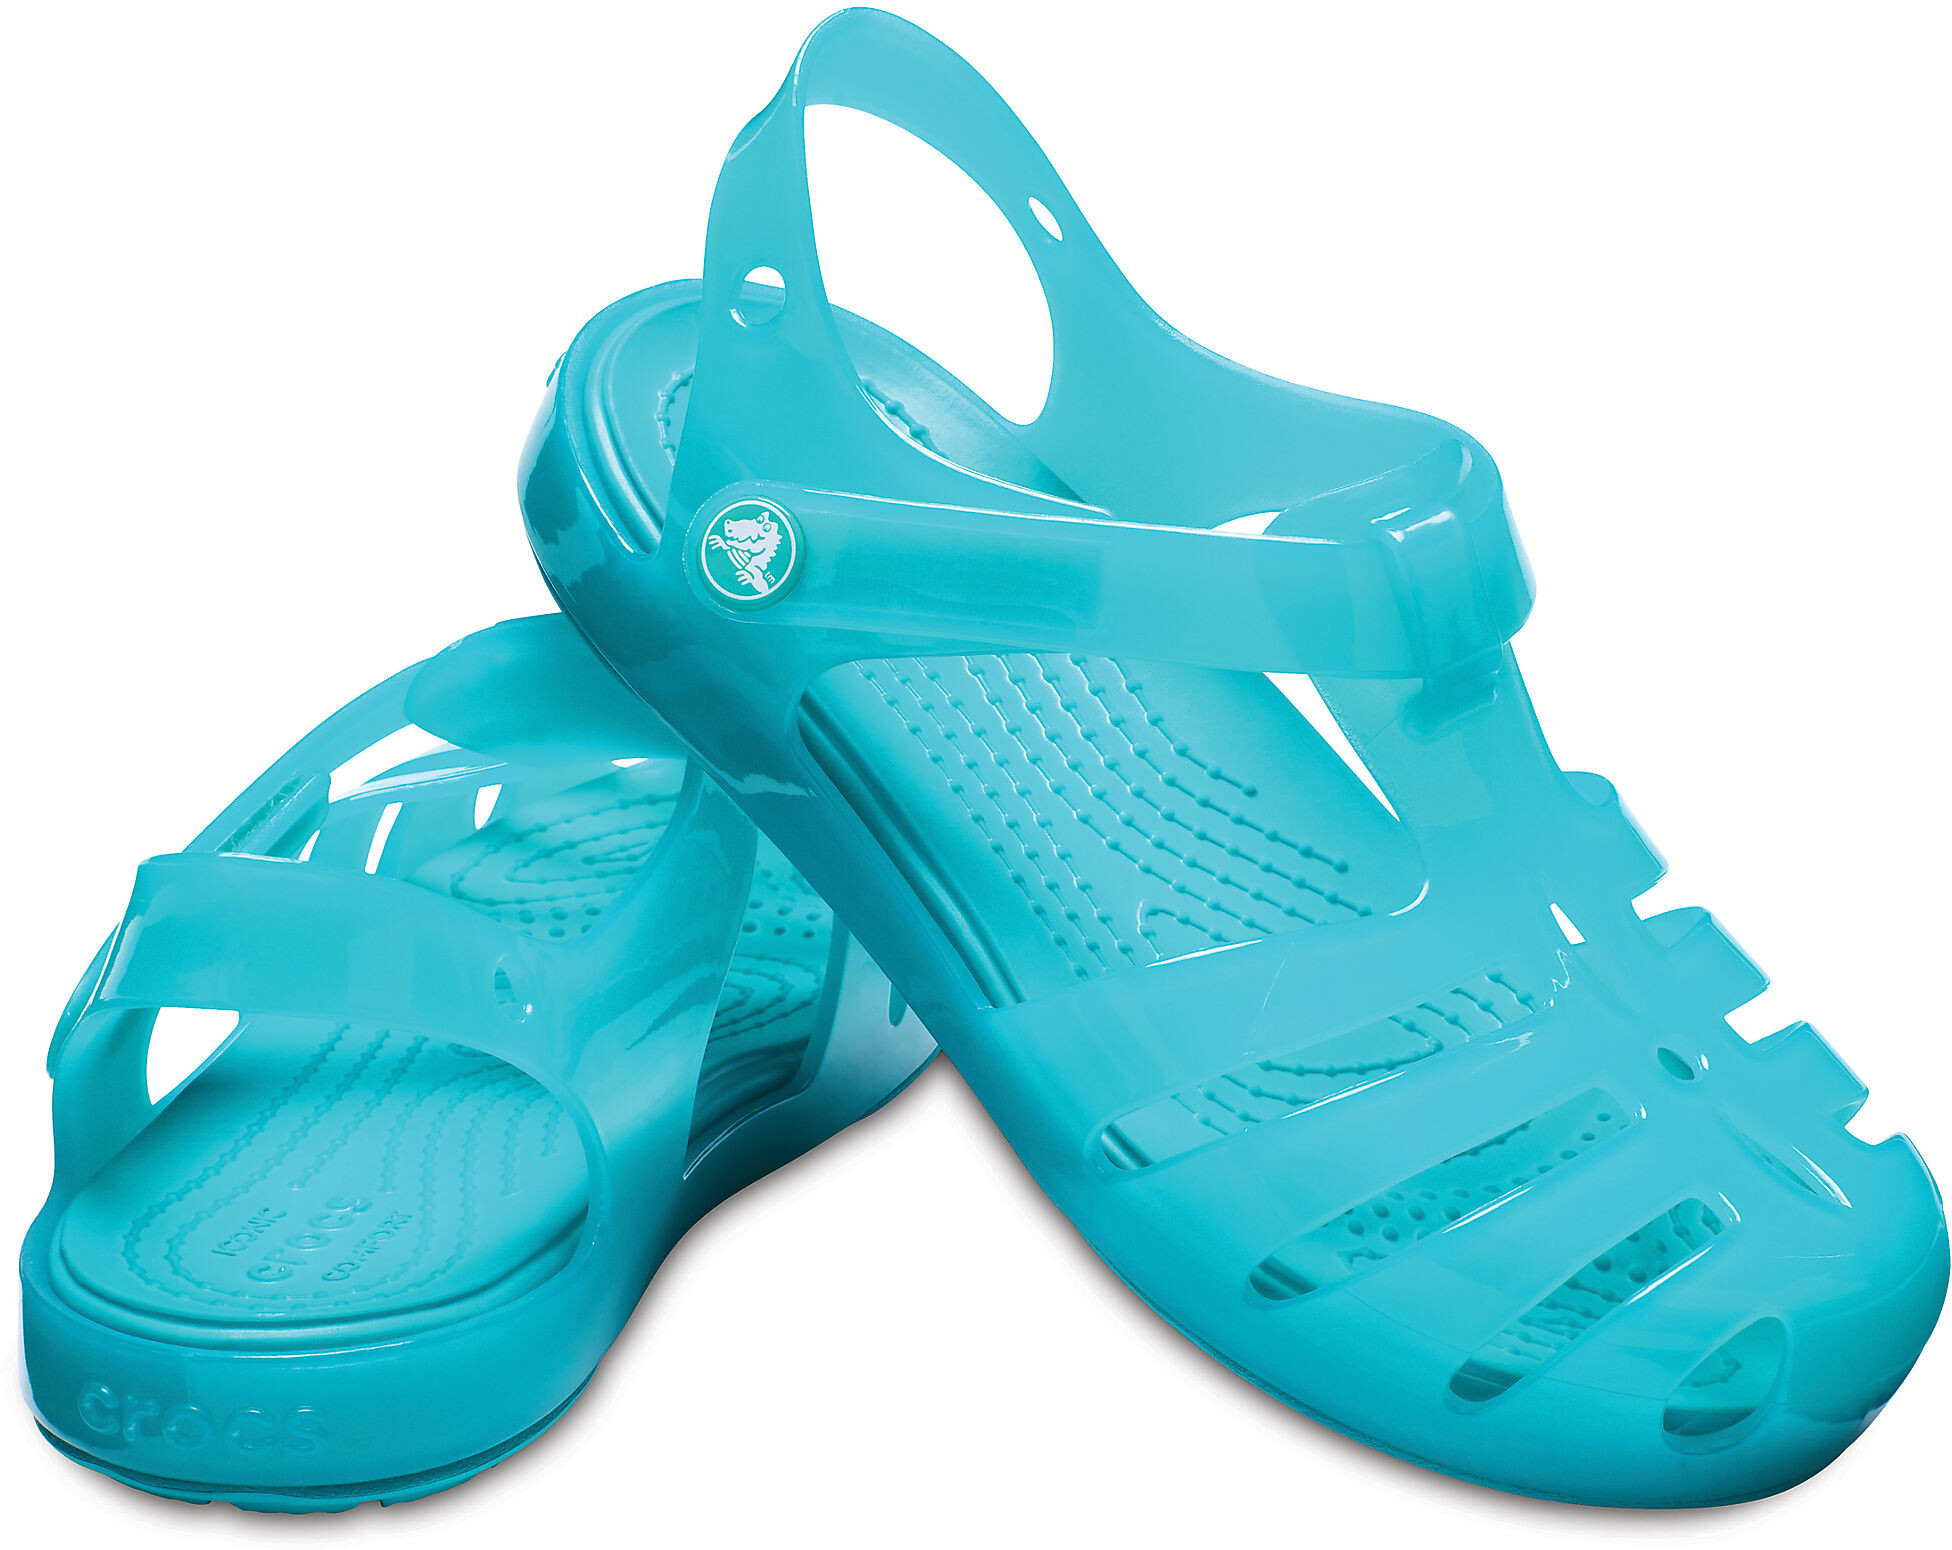 332c433ebafa28 Crocs Isabella PS Sandals Children turquoise at Addnature.co.uk